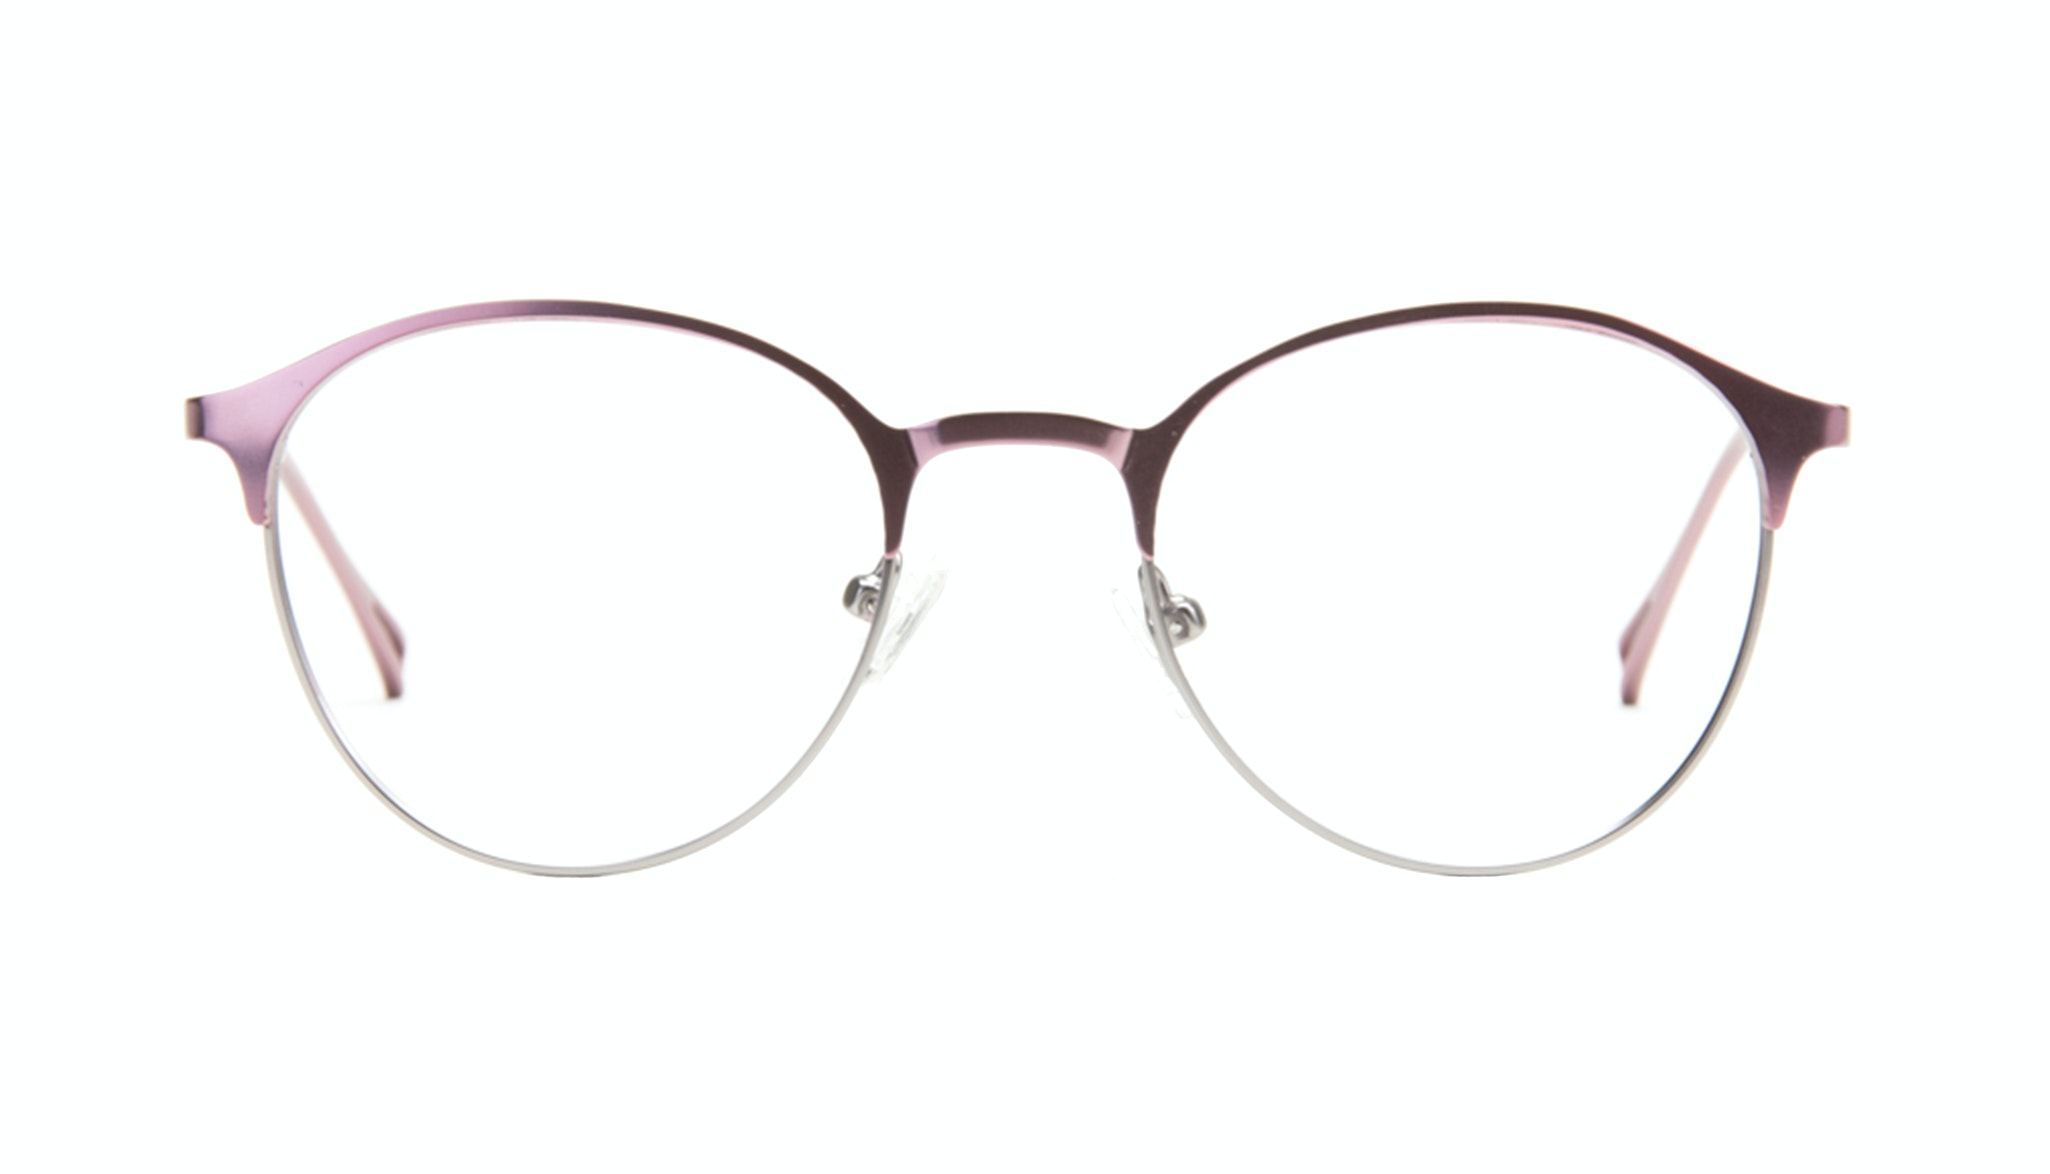 Affordable Fashion Glasses Round Eyeglasses Women Bay Shell Front